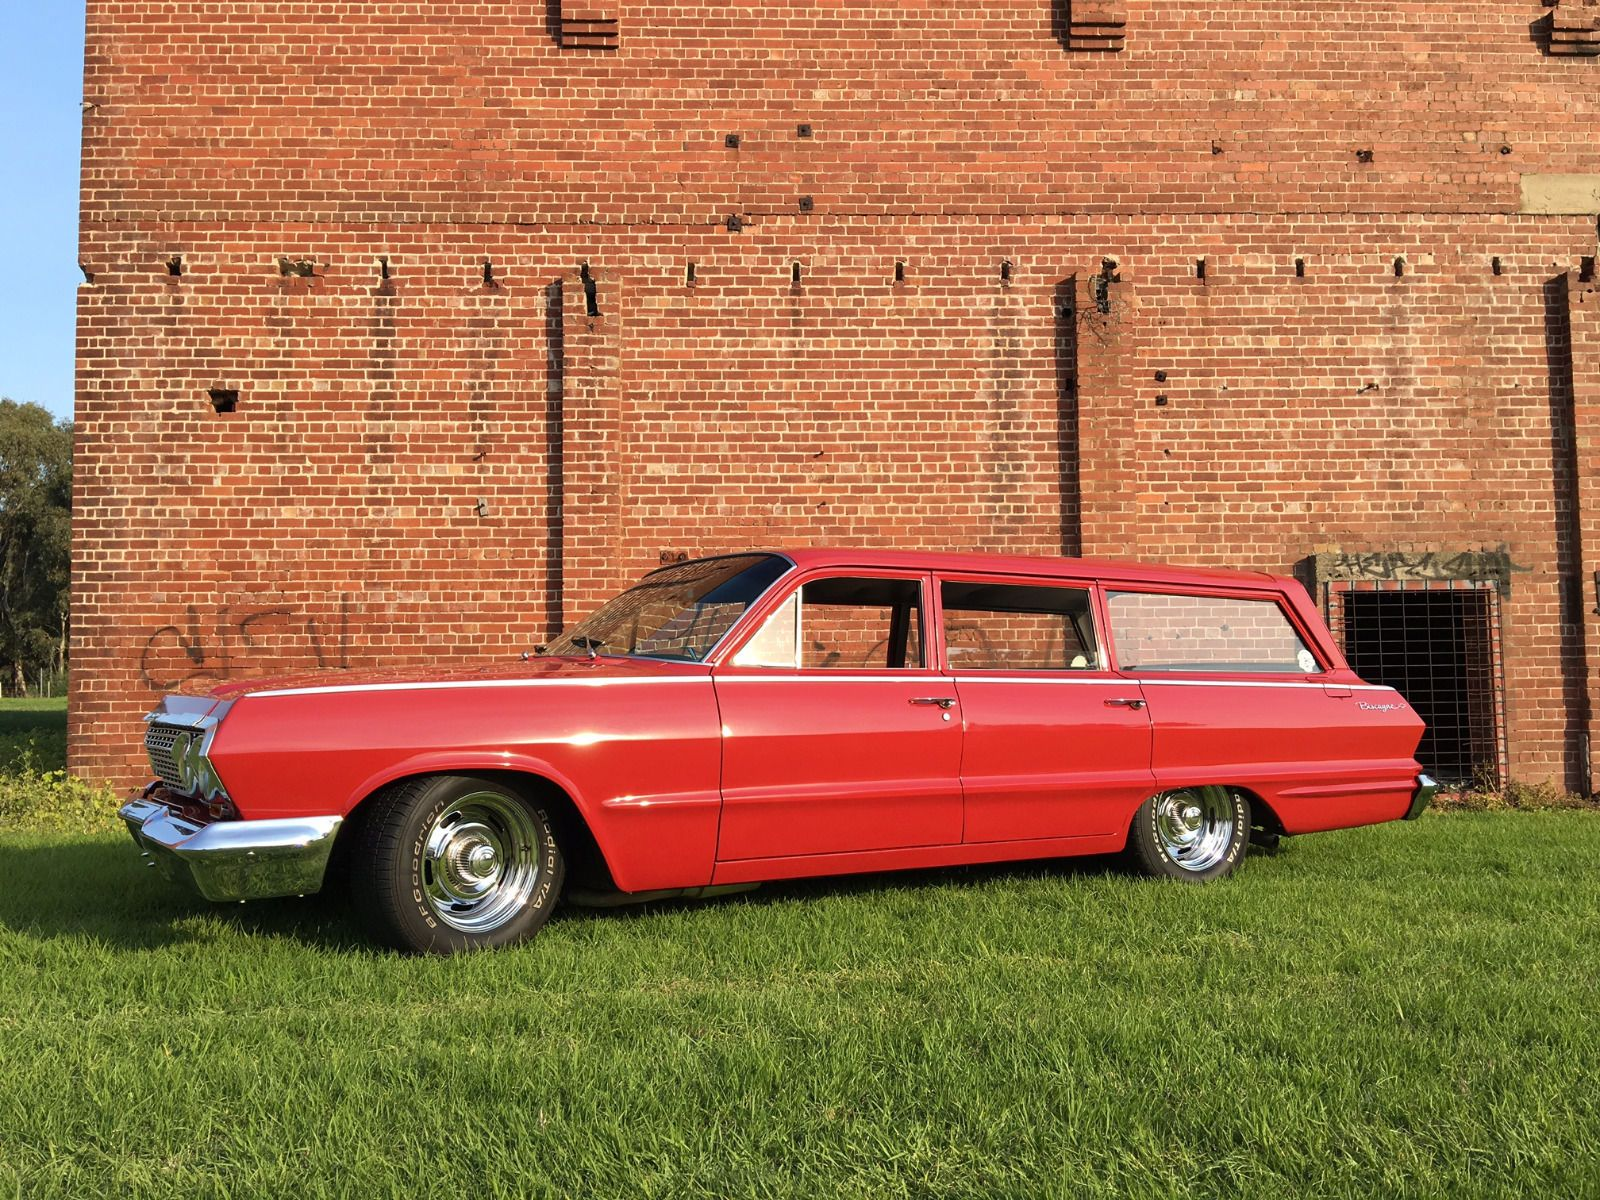 1963 Chevrolet S Wagon Recent Lhd Import Into Australia There